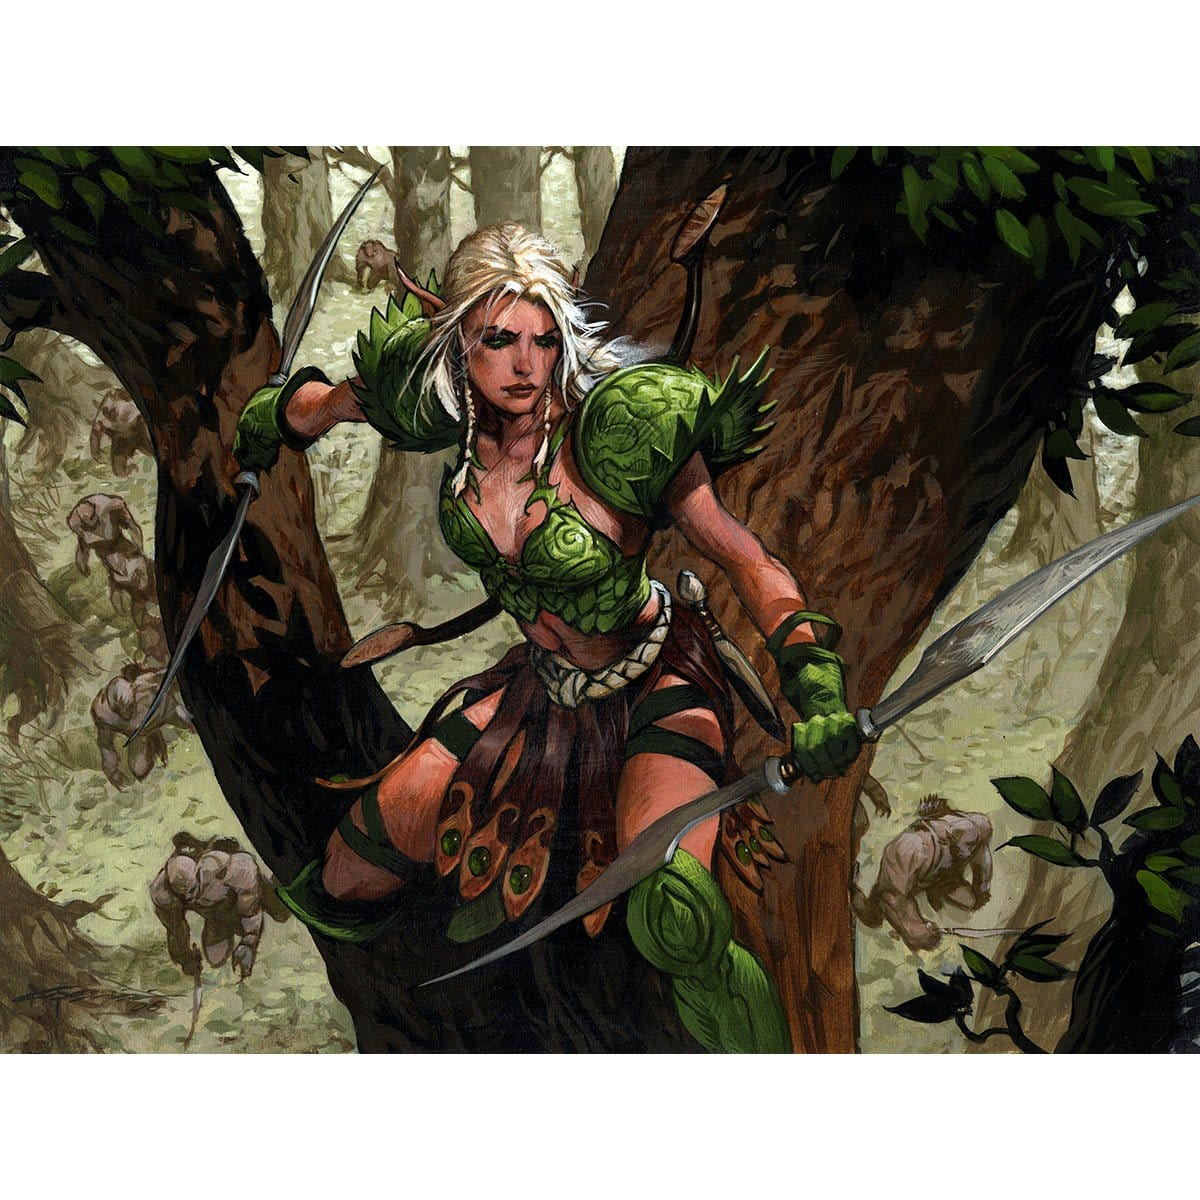 Sylvan Ranger Print - Print - Original Magic Art - Accessories for Magic the Gathering and other card games